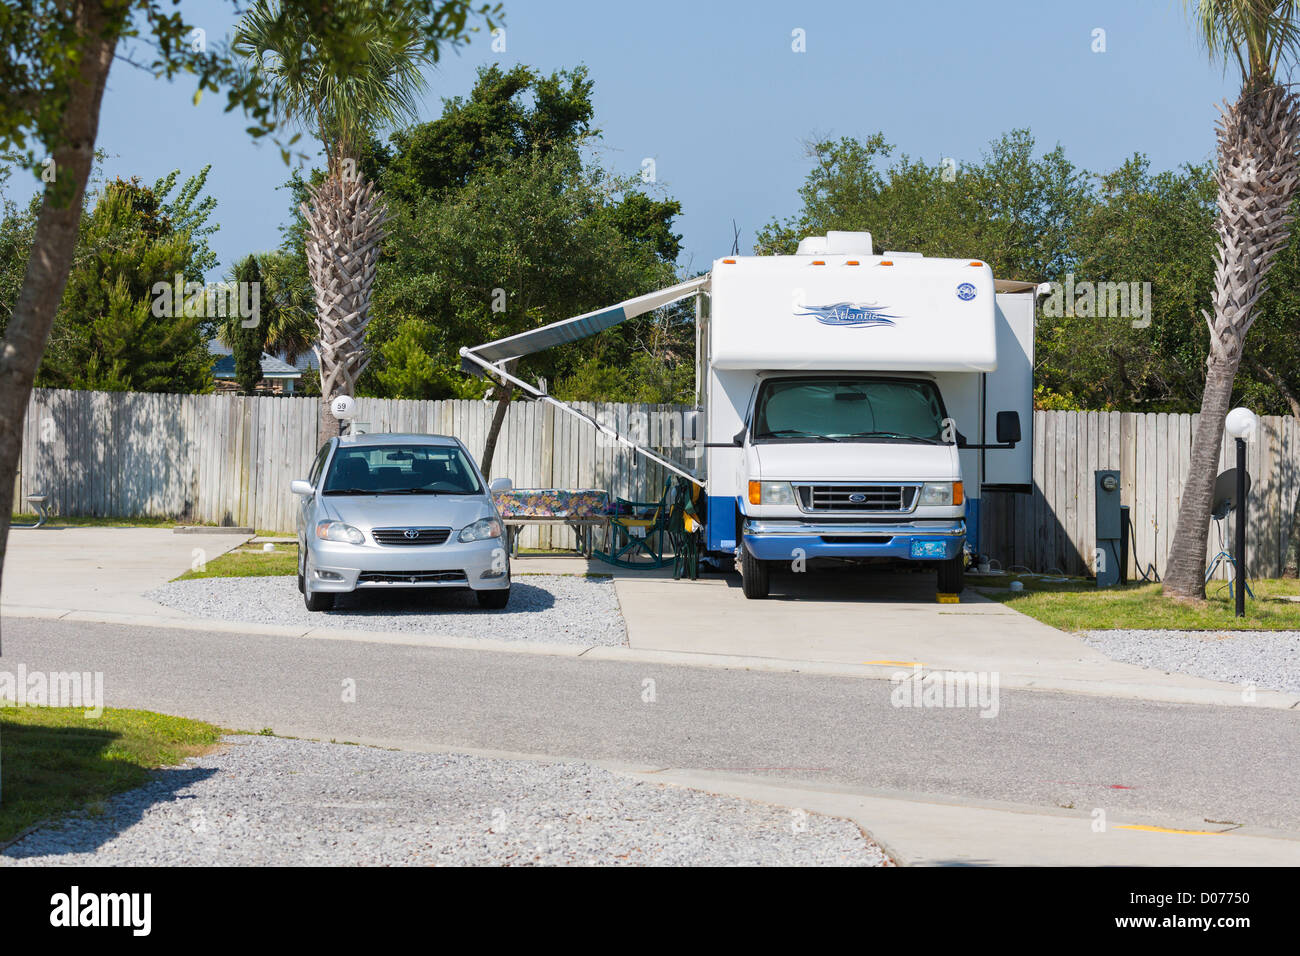 Car and motorhome parked at RV Resort in Navarre, Florida - Stock Image